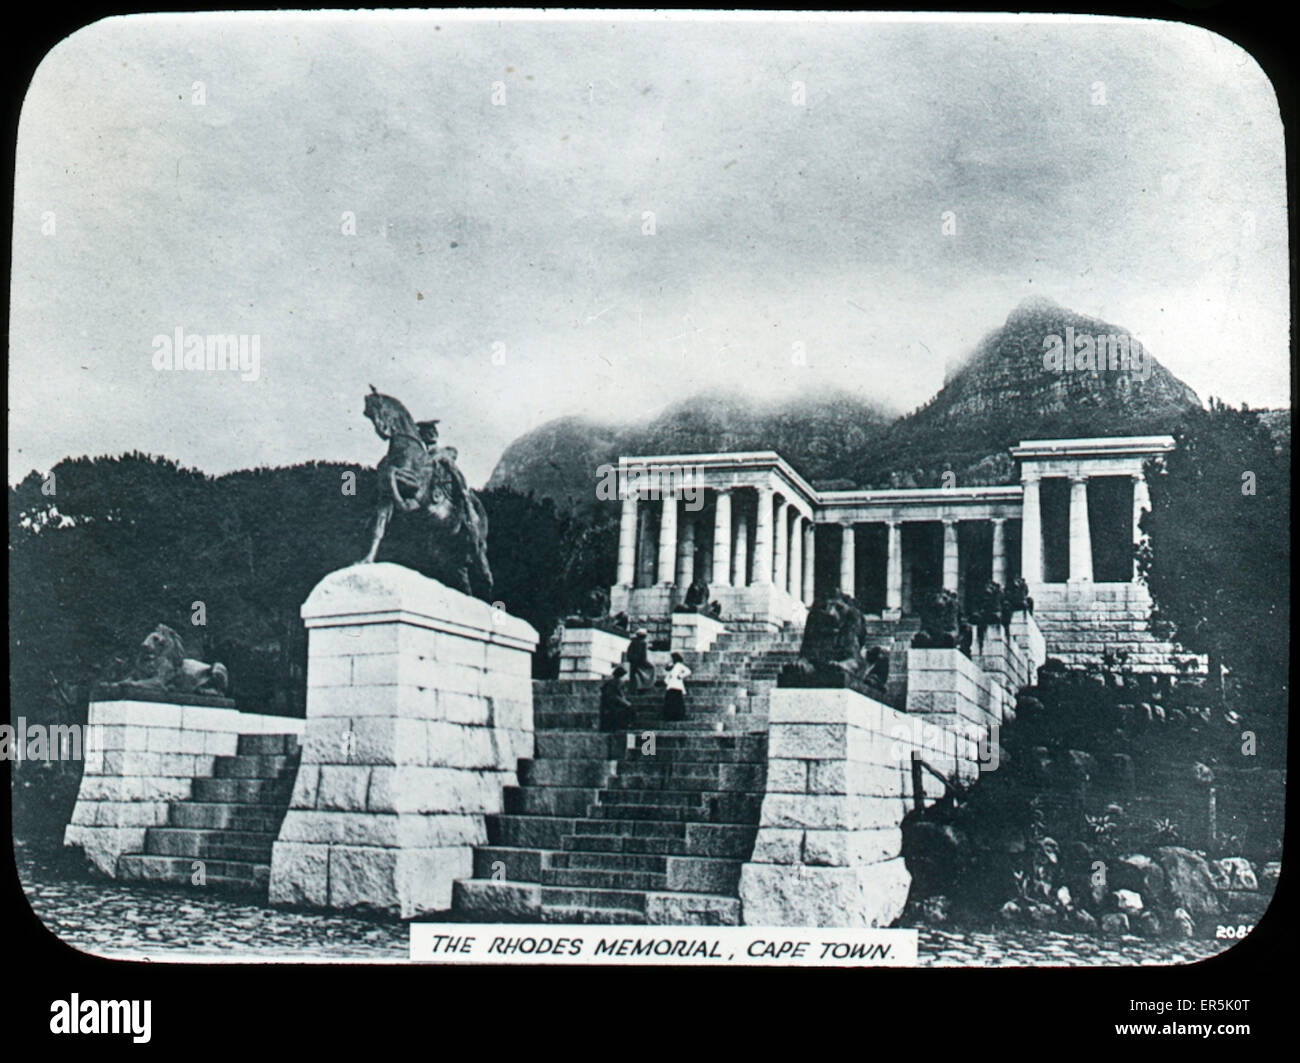 The Rhodes Memorial, Cape Town, Western Cape, South Africa.  1927 - Stock Image